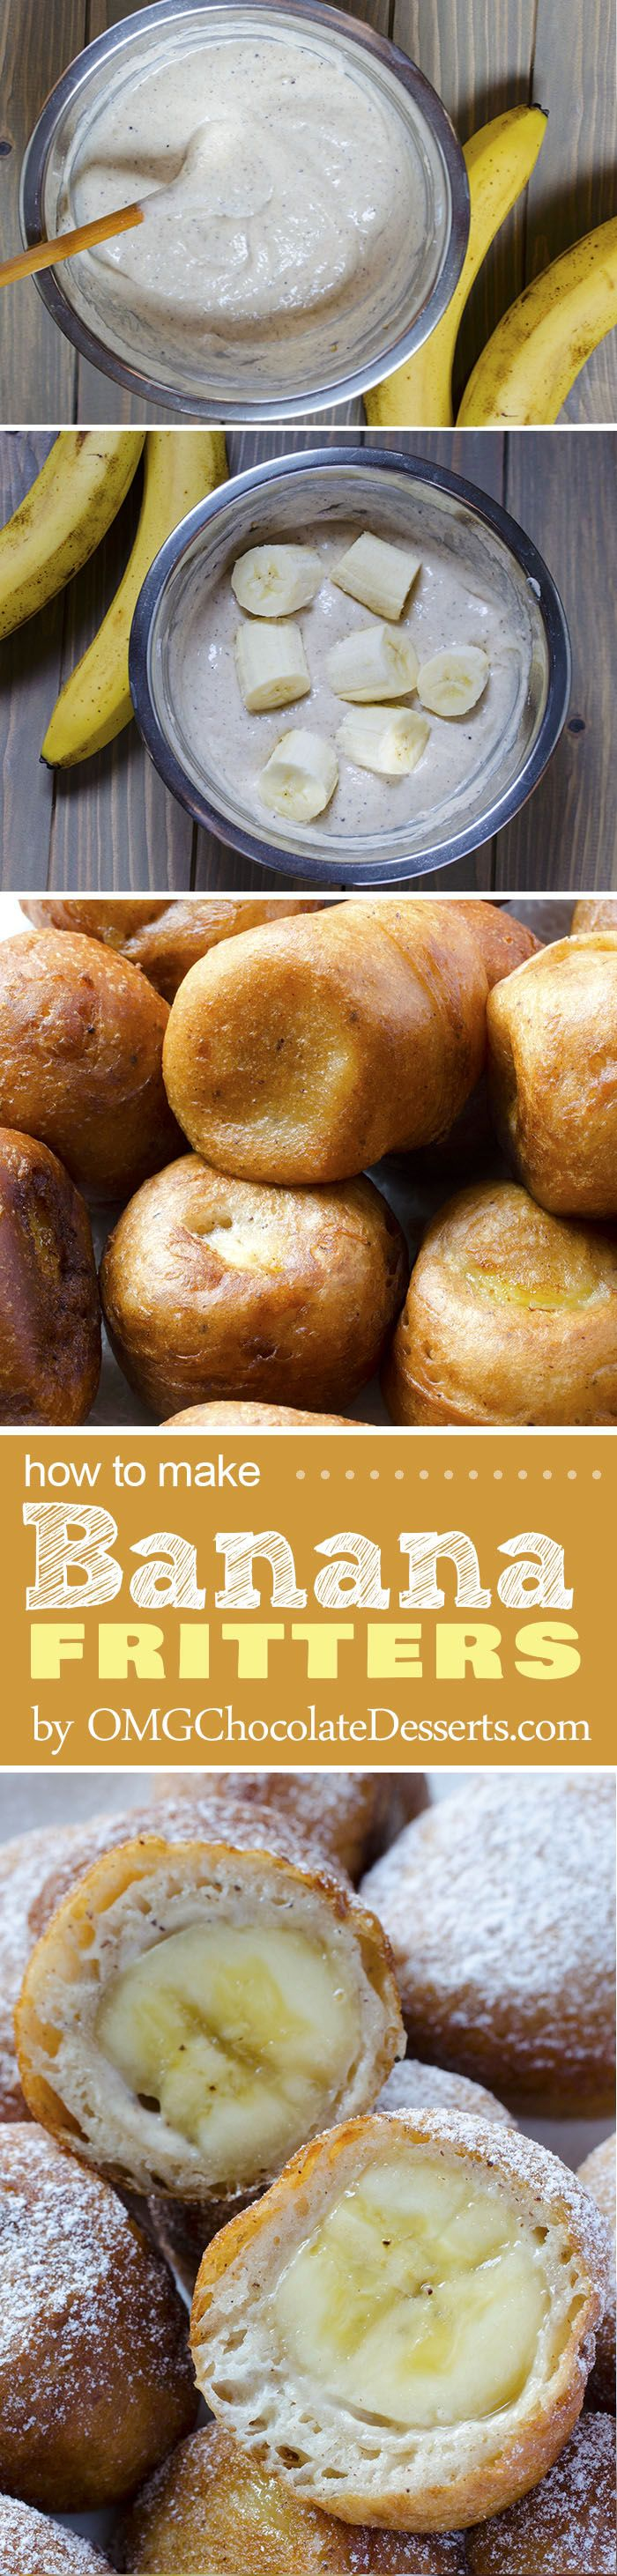 Banana Fritters | OMGChocolateDesserts.com | #banana #fritters #desserts